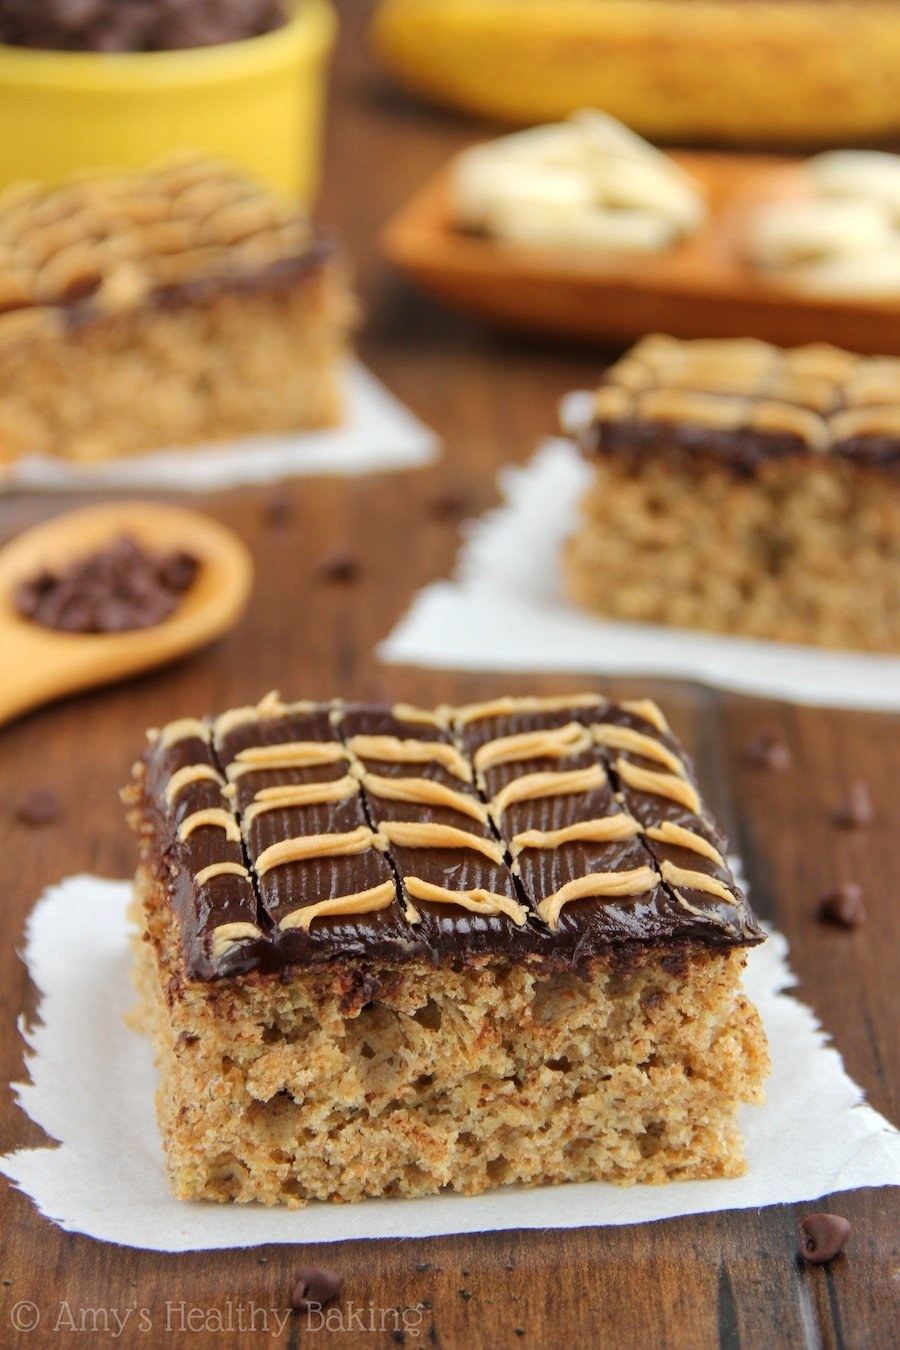 Banana Cake with Fudgy Chocolate Peanut Butter Swirl Frosting. Guilt-free & so moist! You NEED to try this frosting!